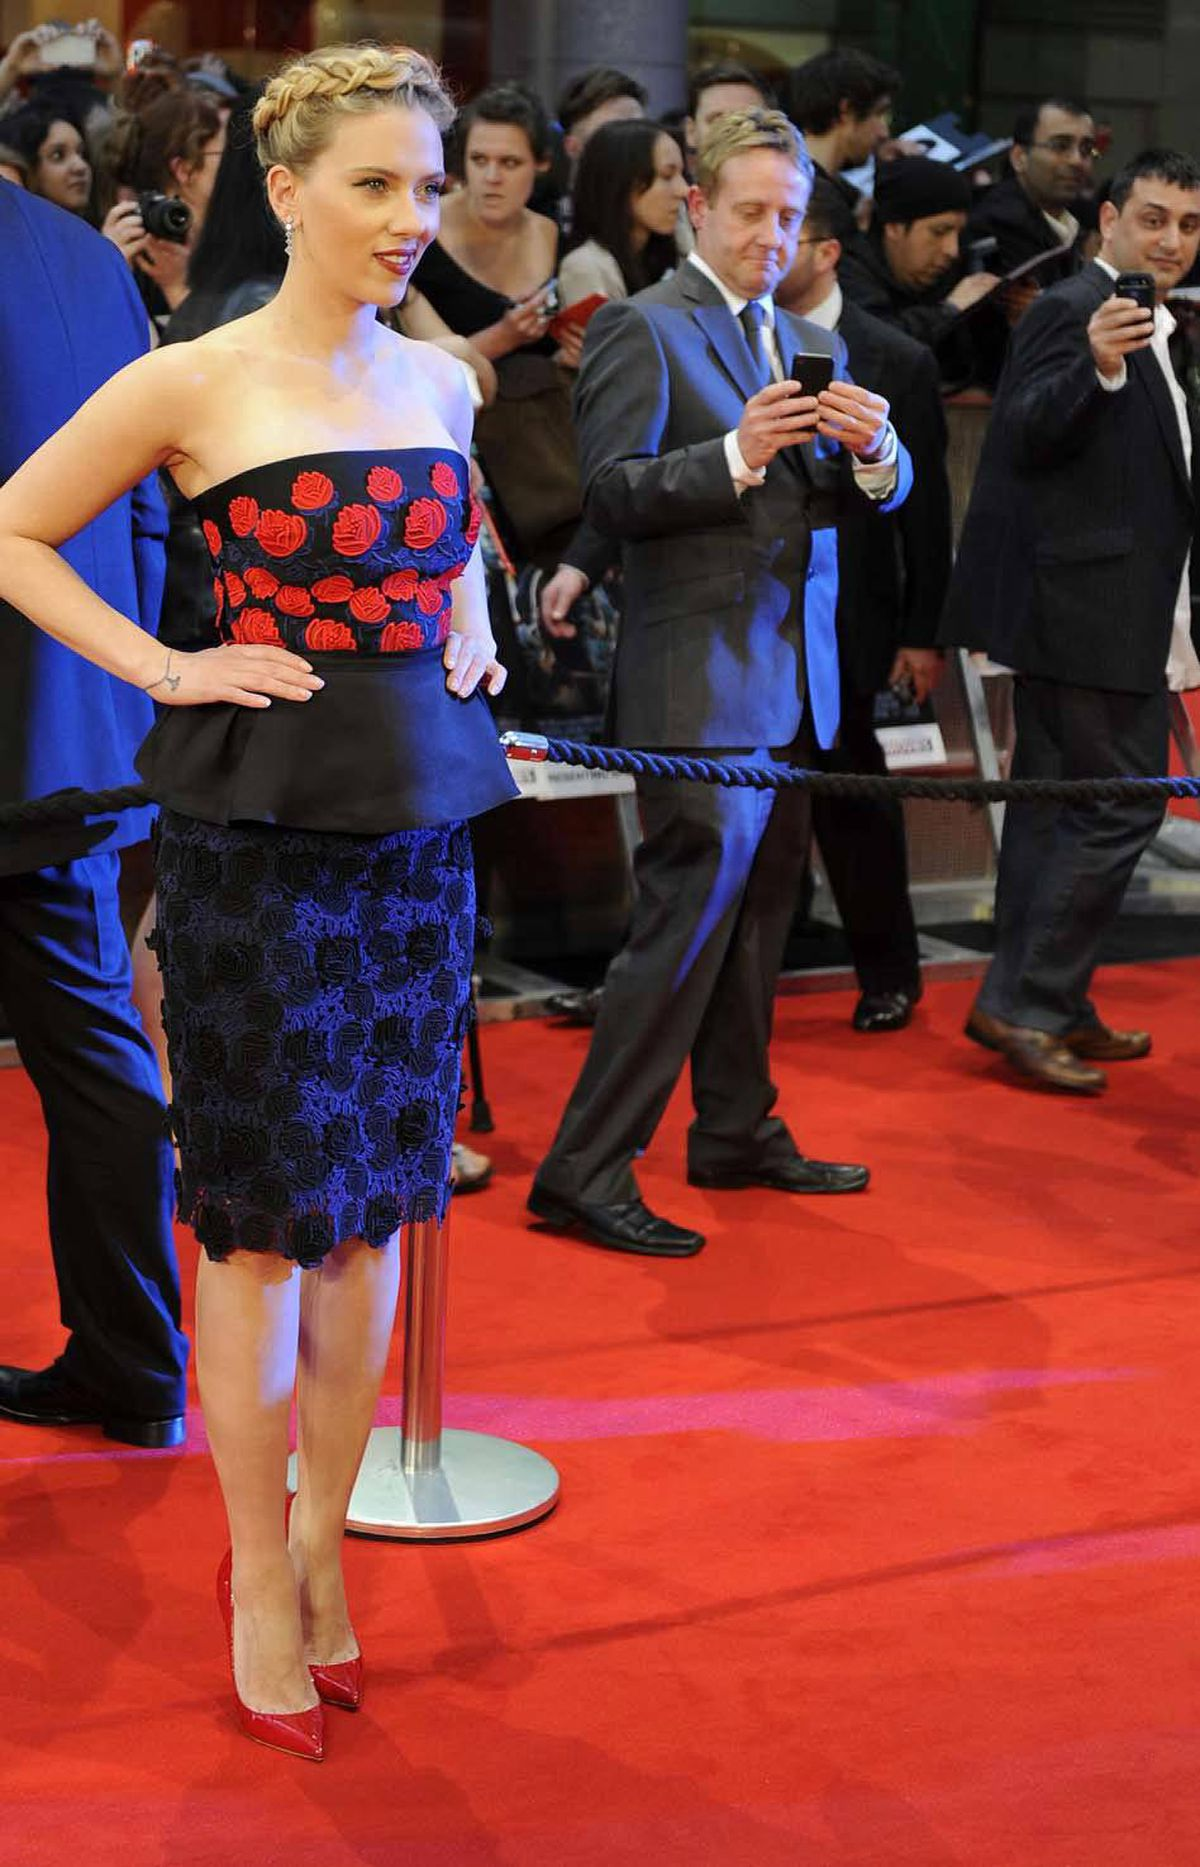 ". . . Or Hollywood starlet Scarlett Johansson, also at the ""Avengers Assemble"" premiere in London last week."